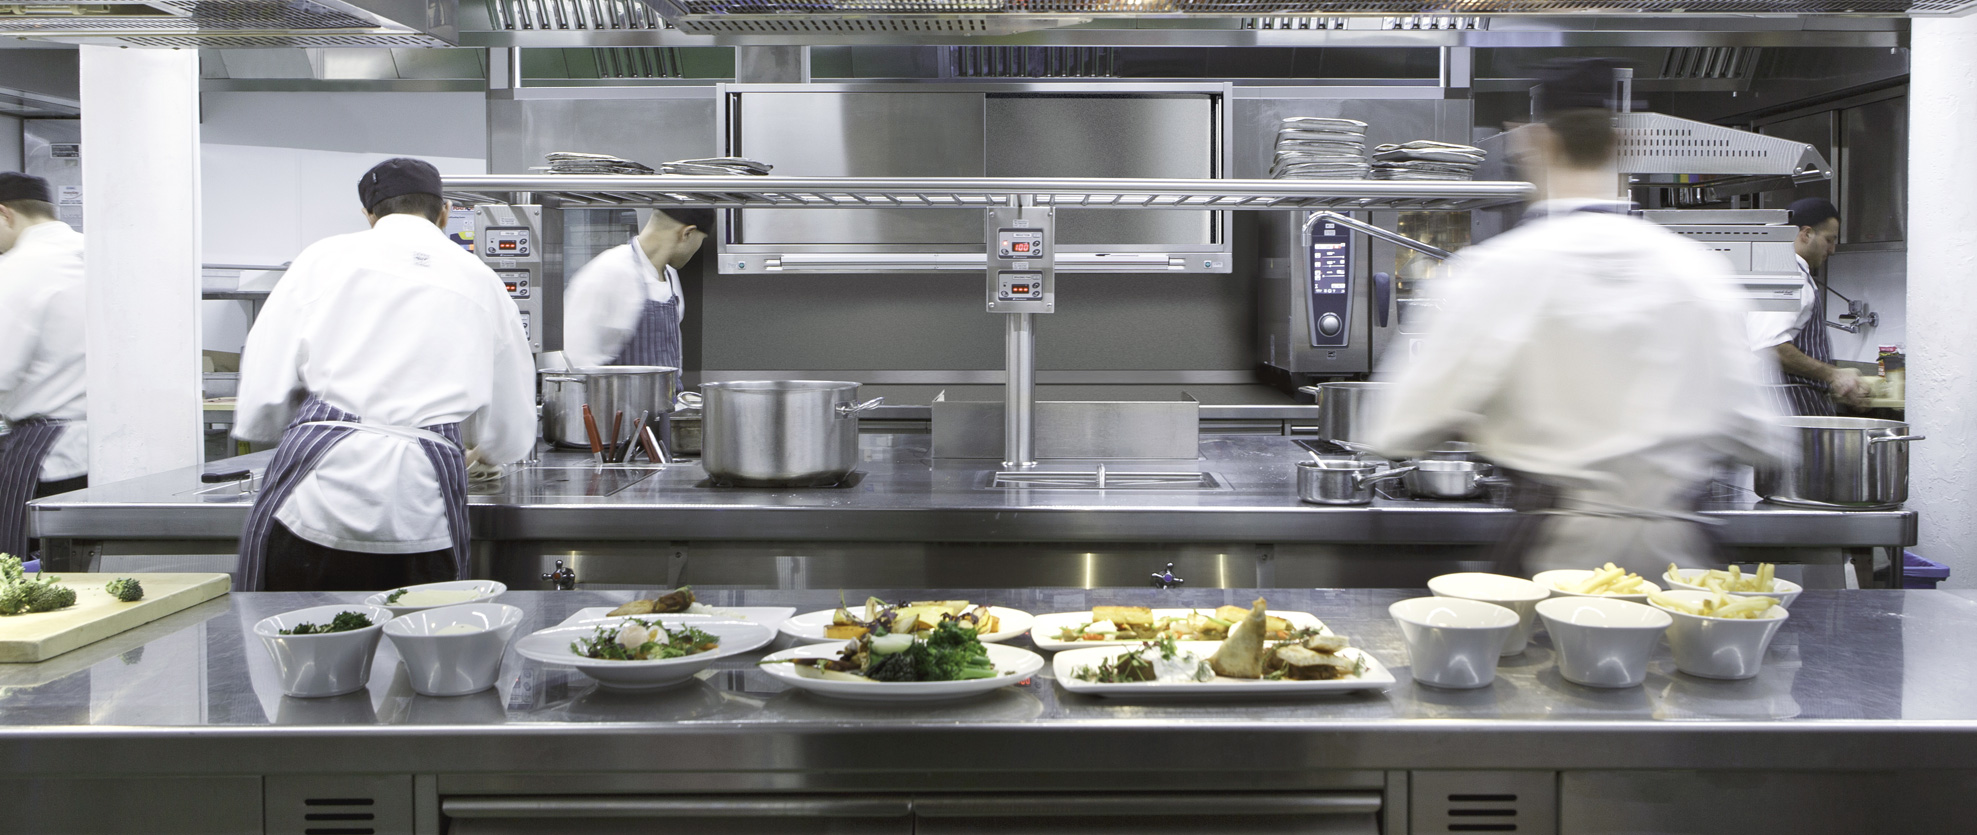 Kitchen Efficiency - Streamline Your Menu